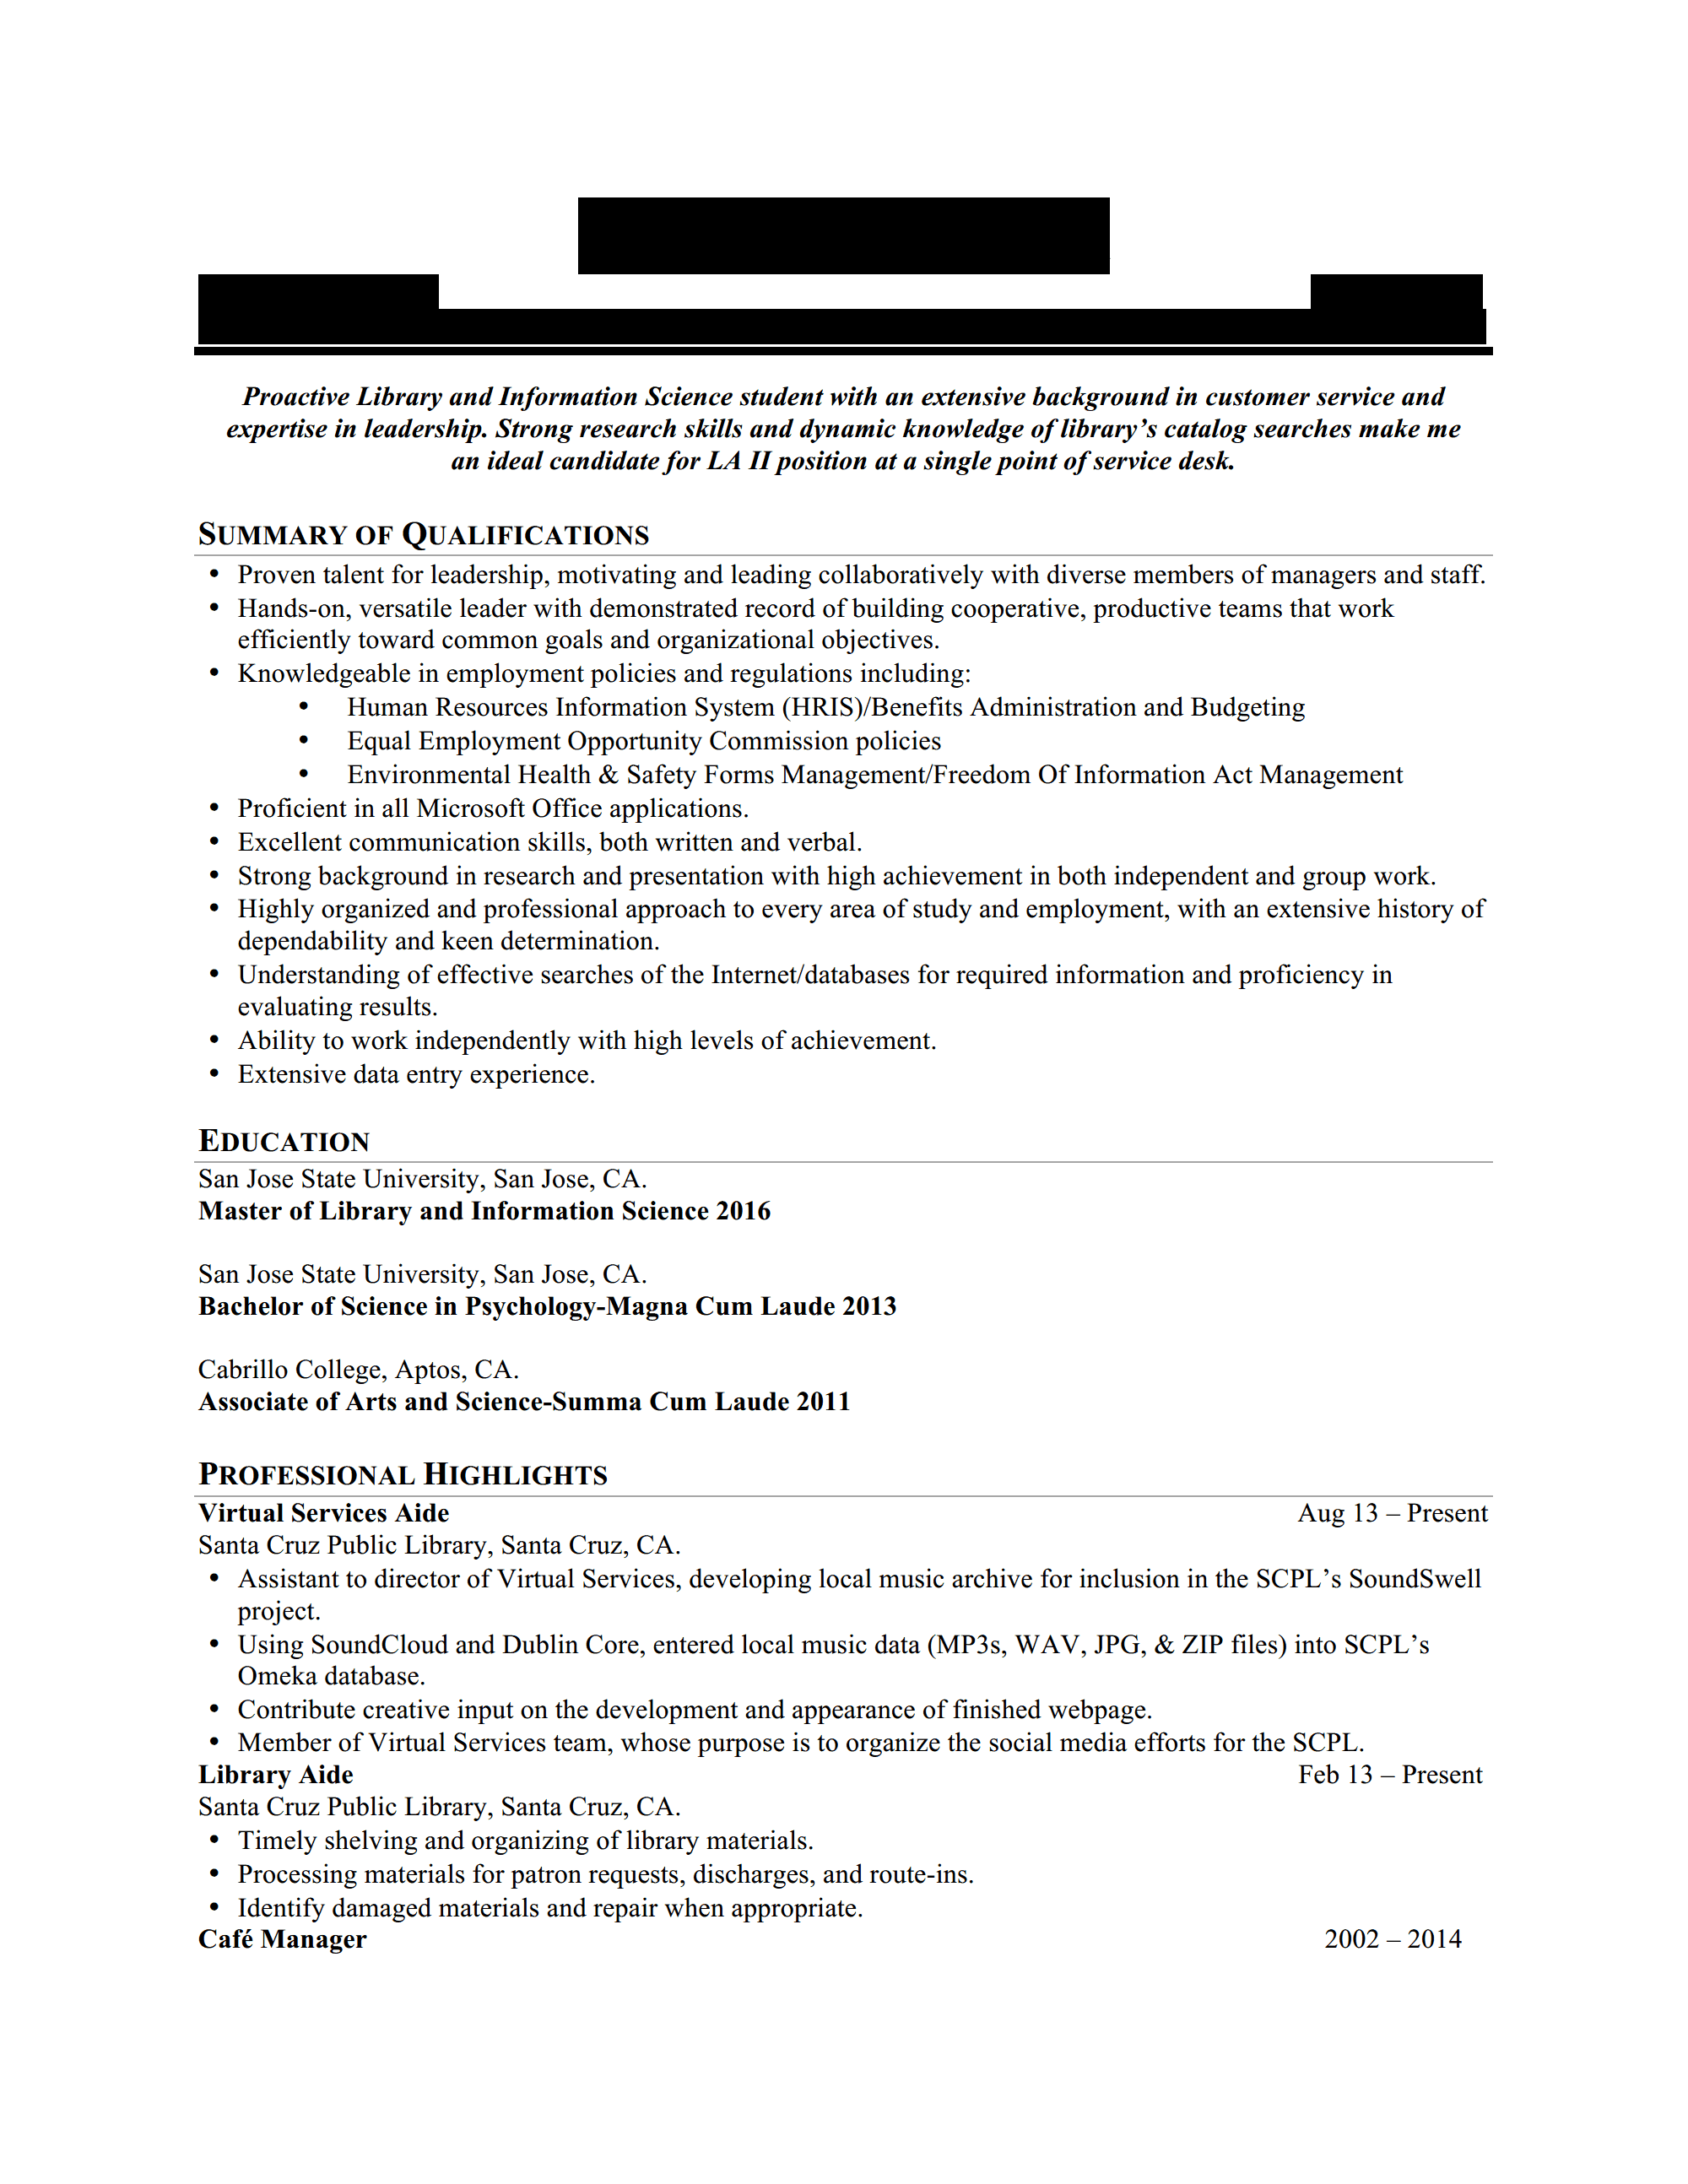 for public review un d job hunter hiring librarians resume for critique 2014 page 1